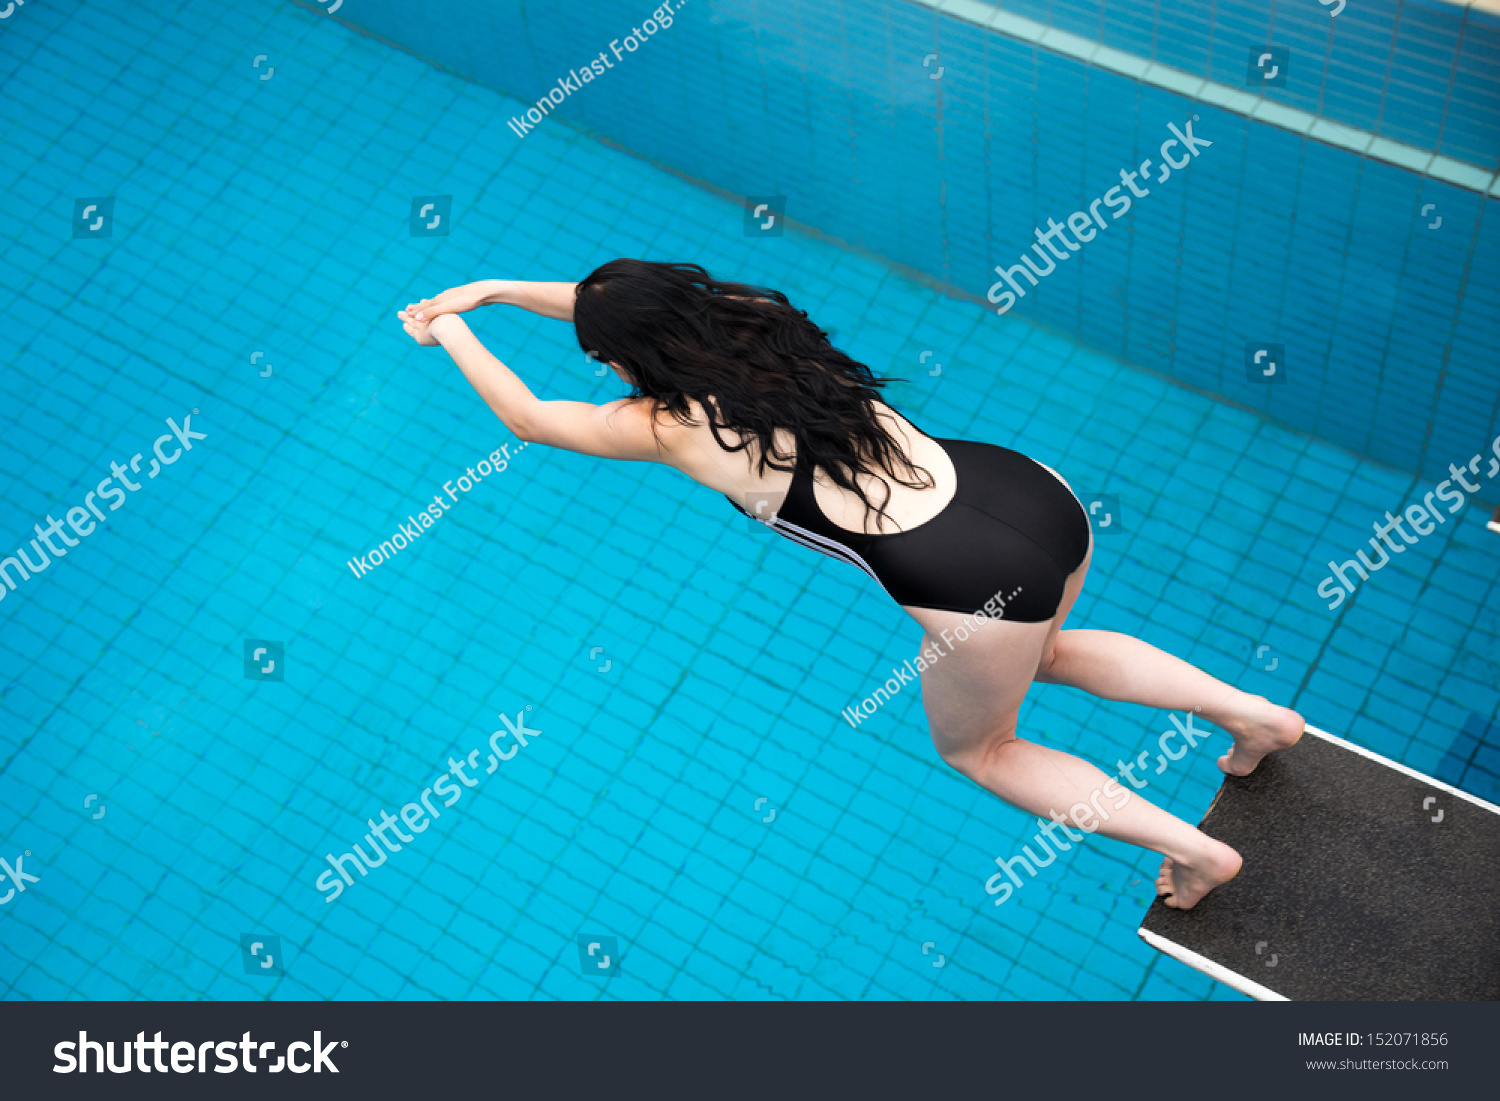 Public Swimming Pools With Diving Boards woman jumping diving board public swimming stock photo 152071856